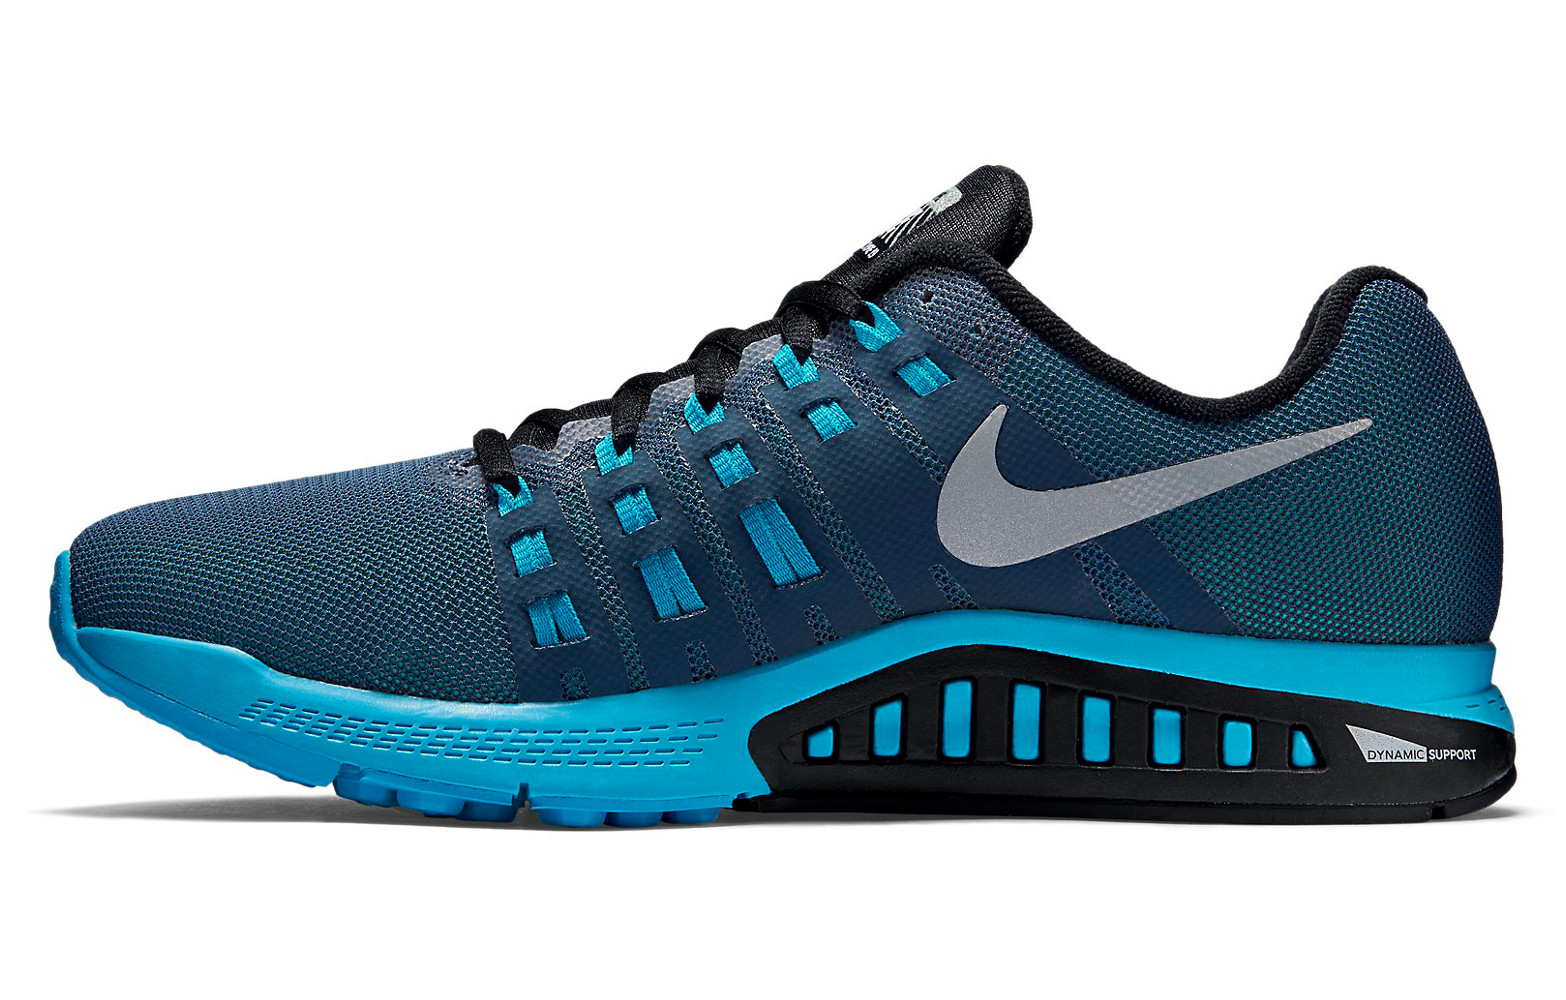 lowest price 3ae43 7adcd Chaussures de Running Nike AIR ZOOM STRUCTURE 19 FLASH Bleu